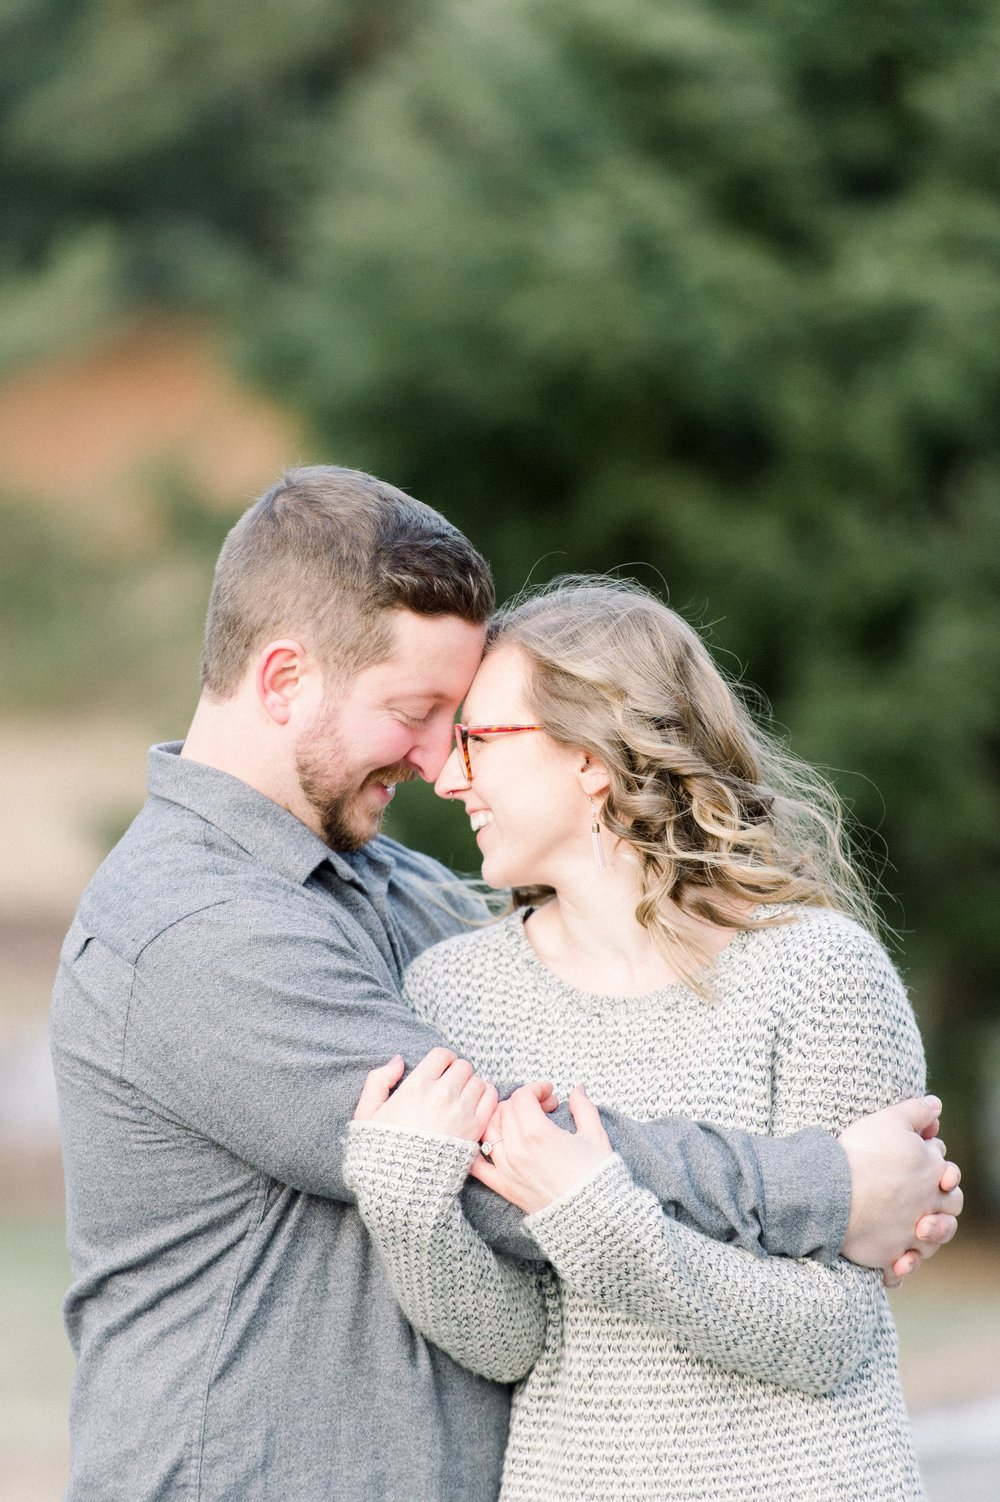 Arnold Arboretum Boston Winter Engagement Session Posing